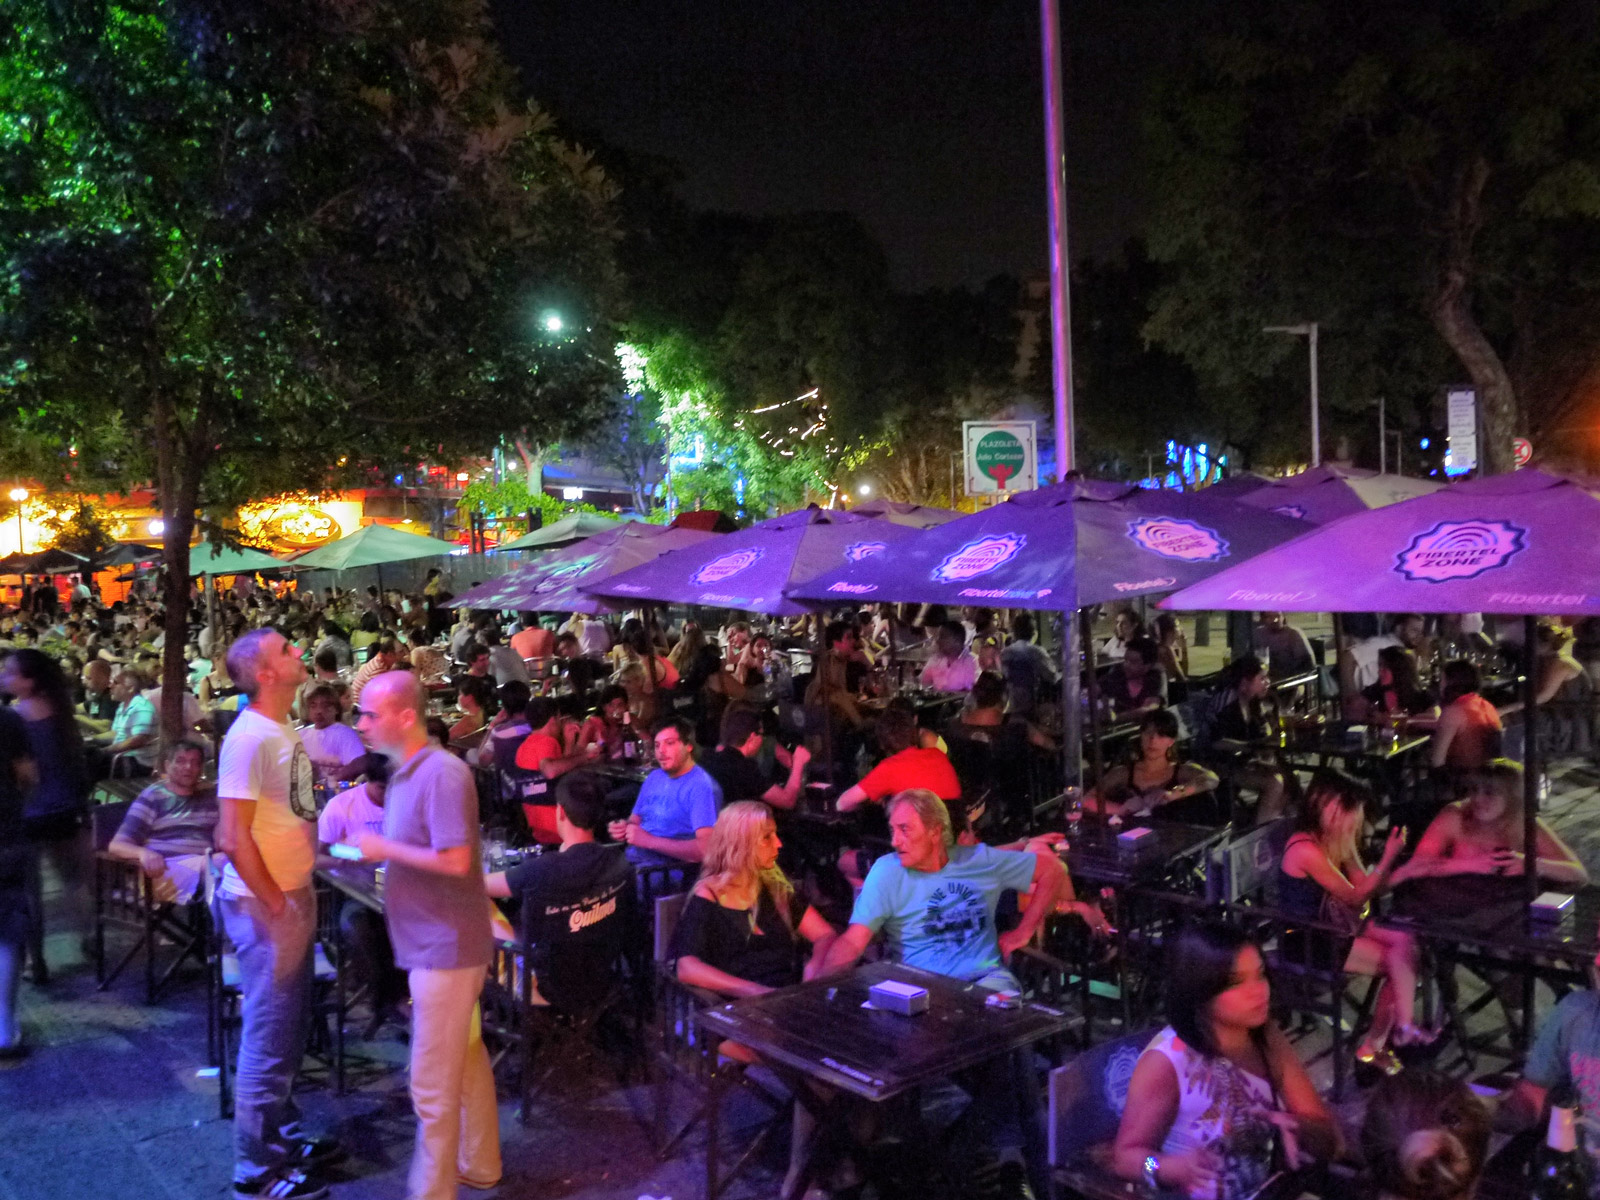 Chilled Nightlife at Plaza Serrano in Palermo - Buenos Aires, Argentina